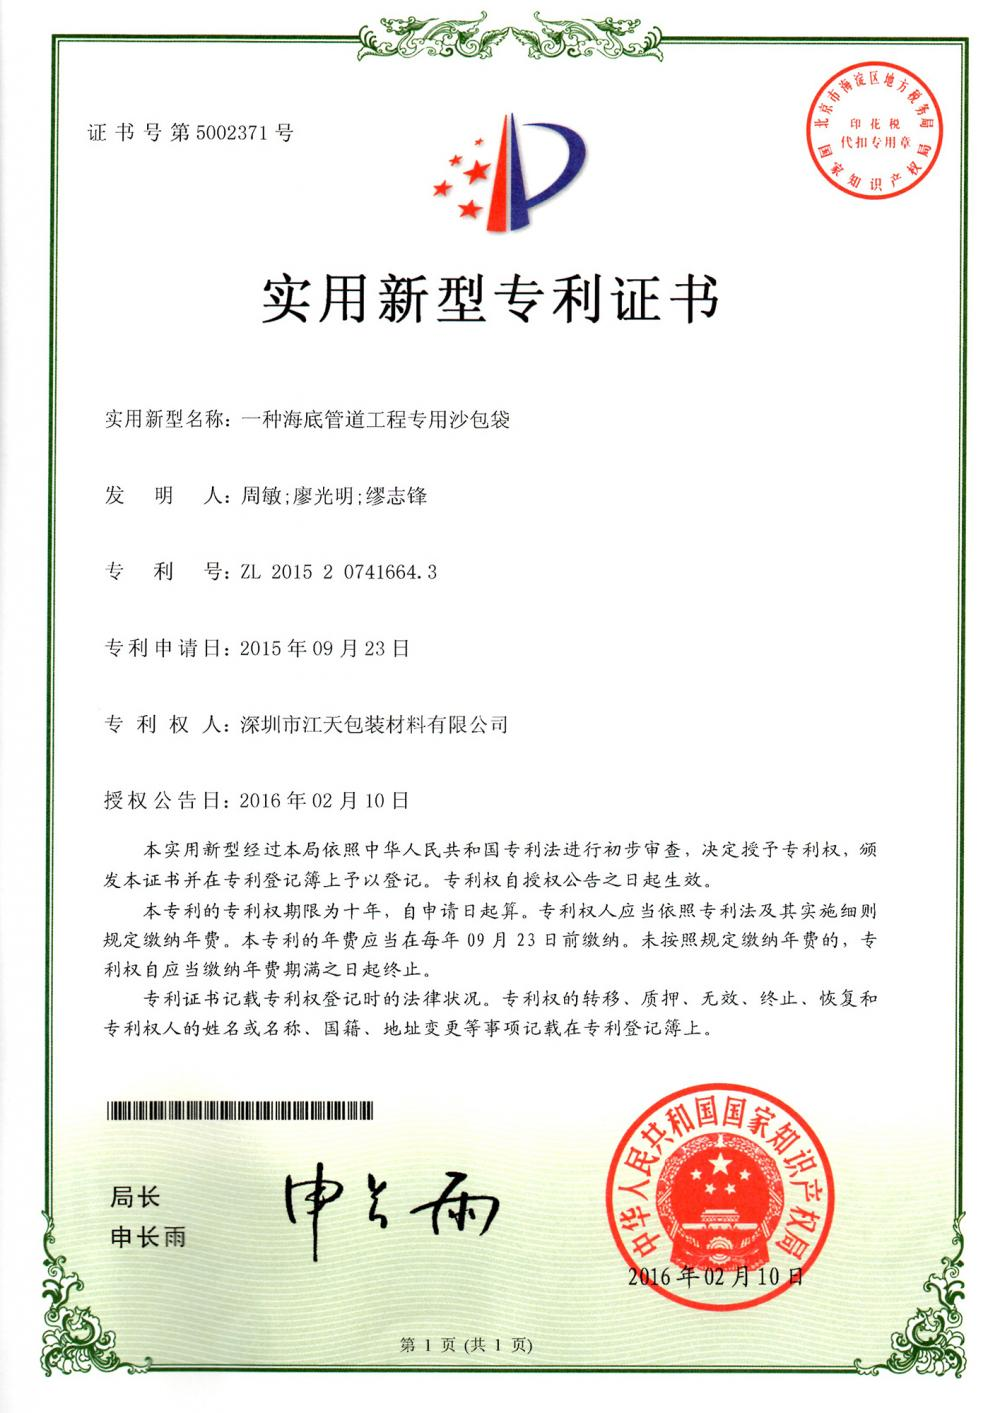 Practical certificate of patent